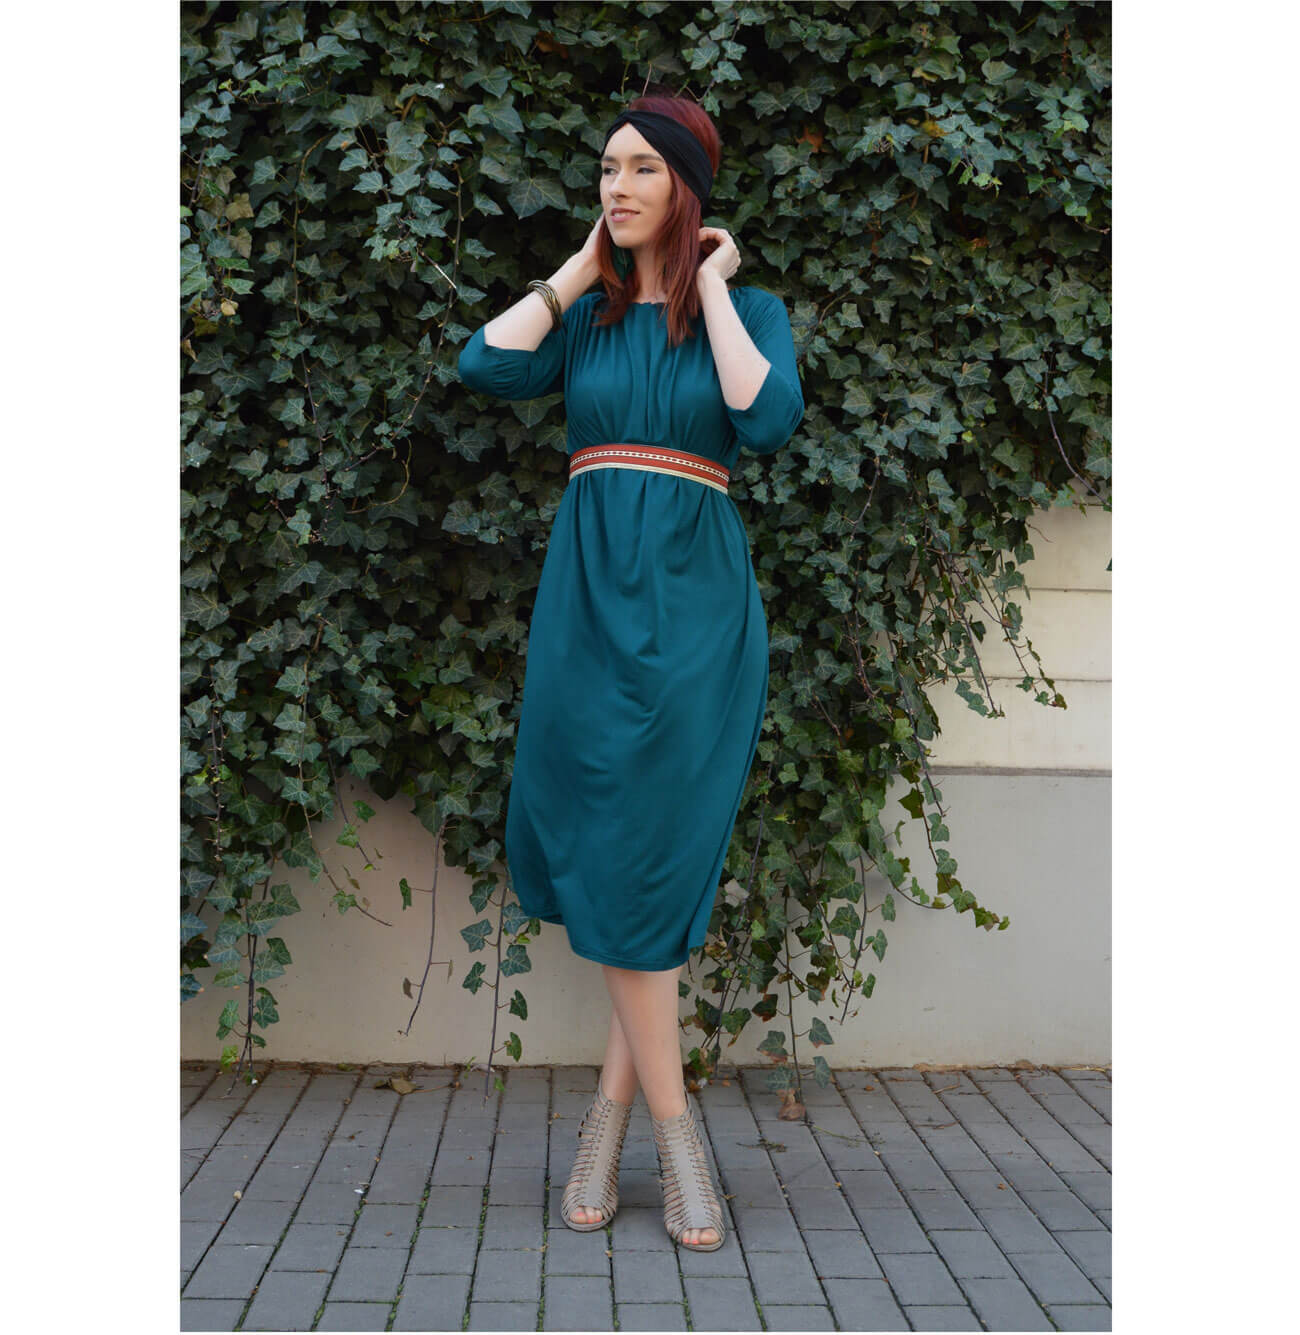 Emerald dress below knees with three quarter sleeves